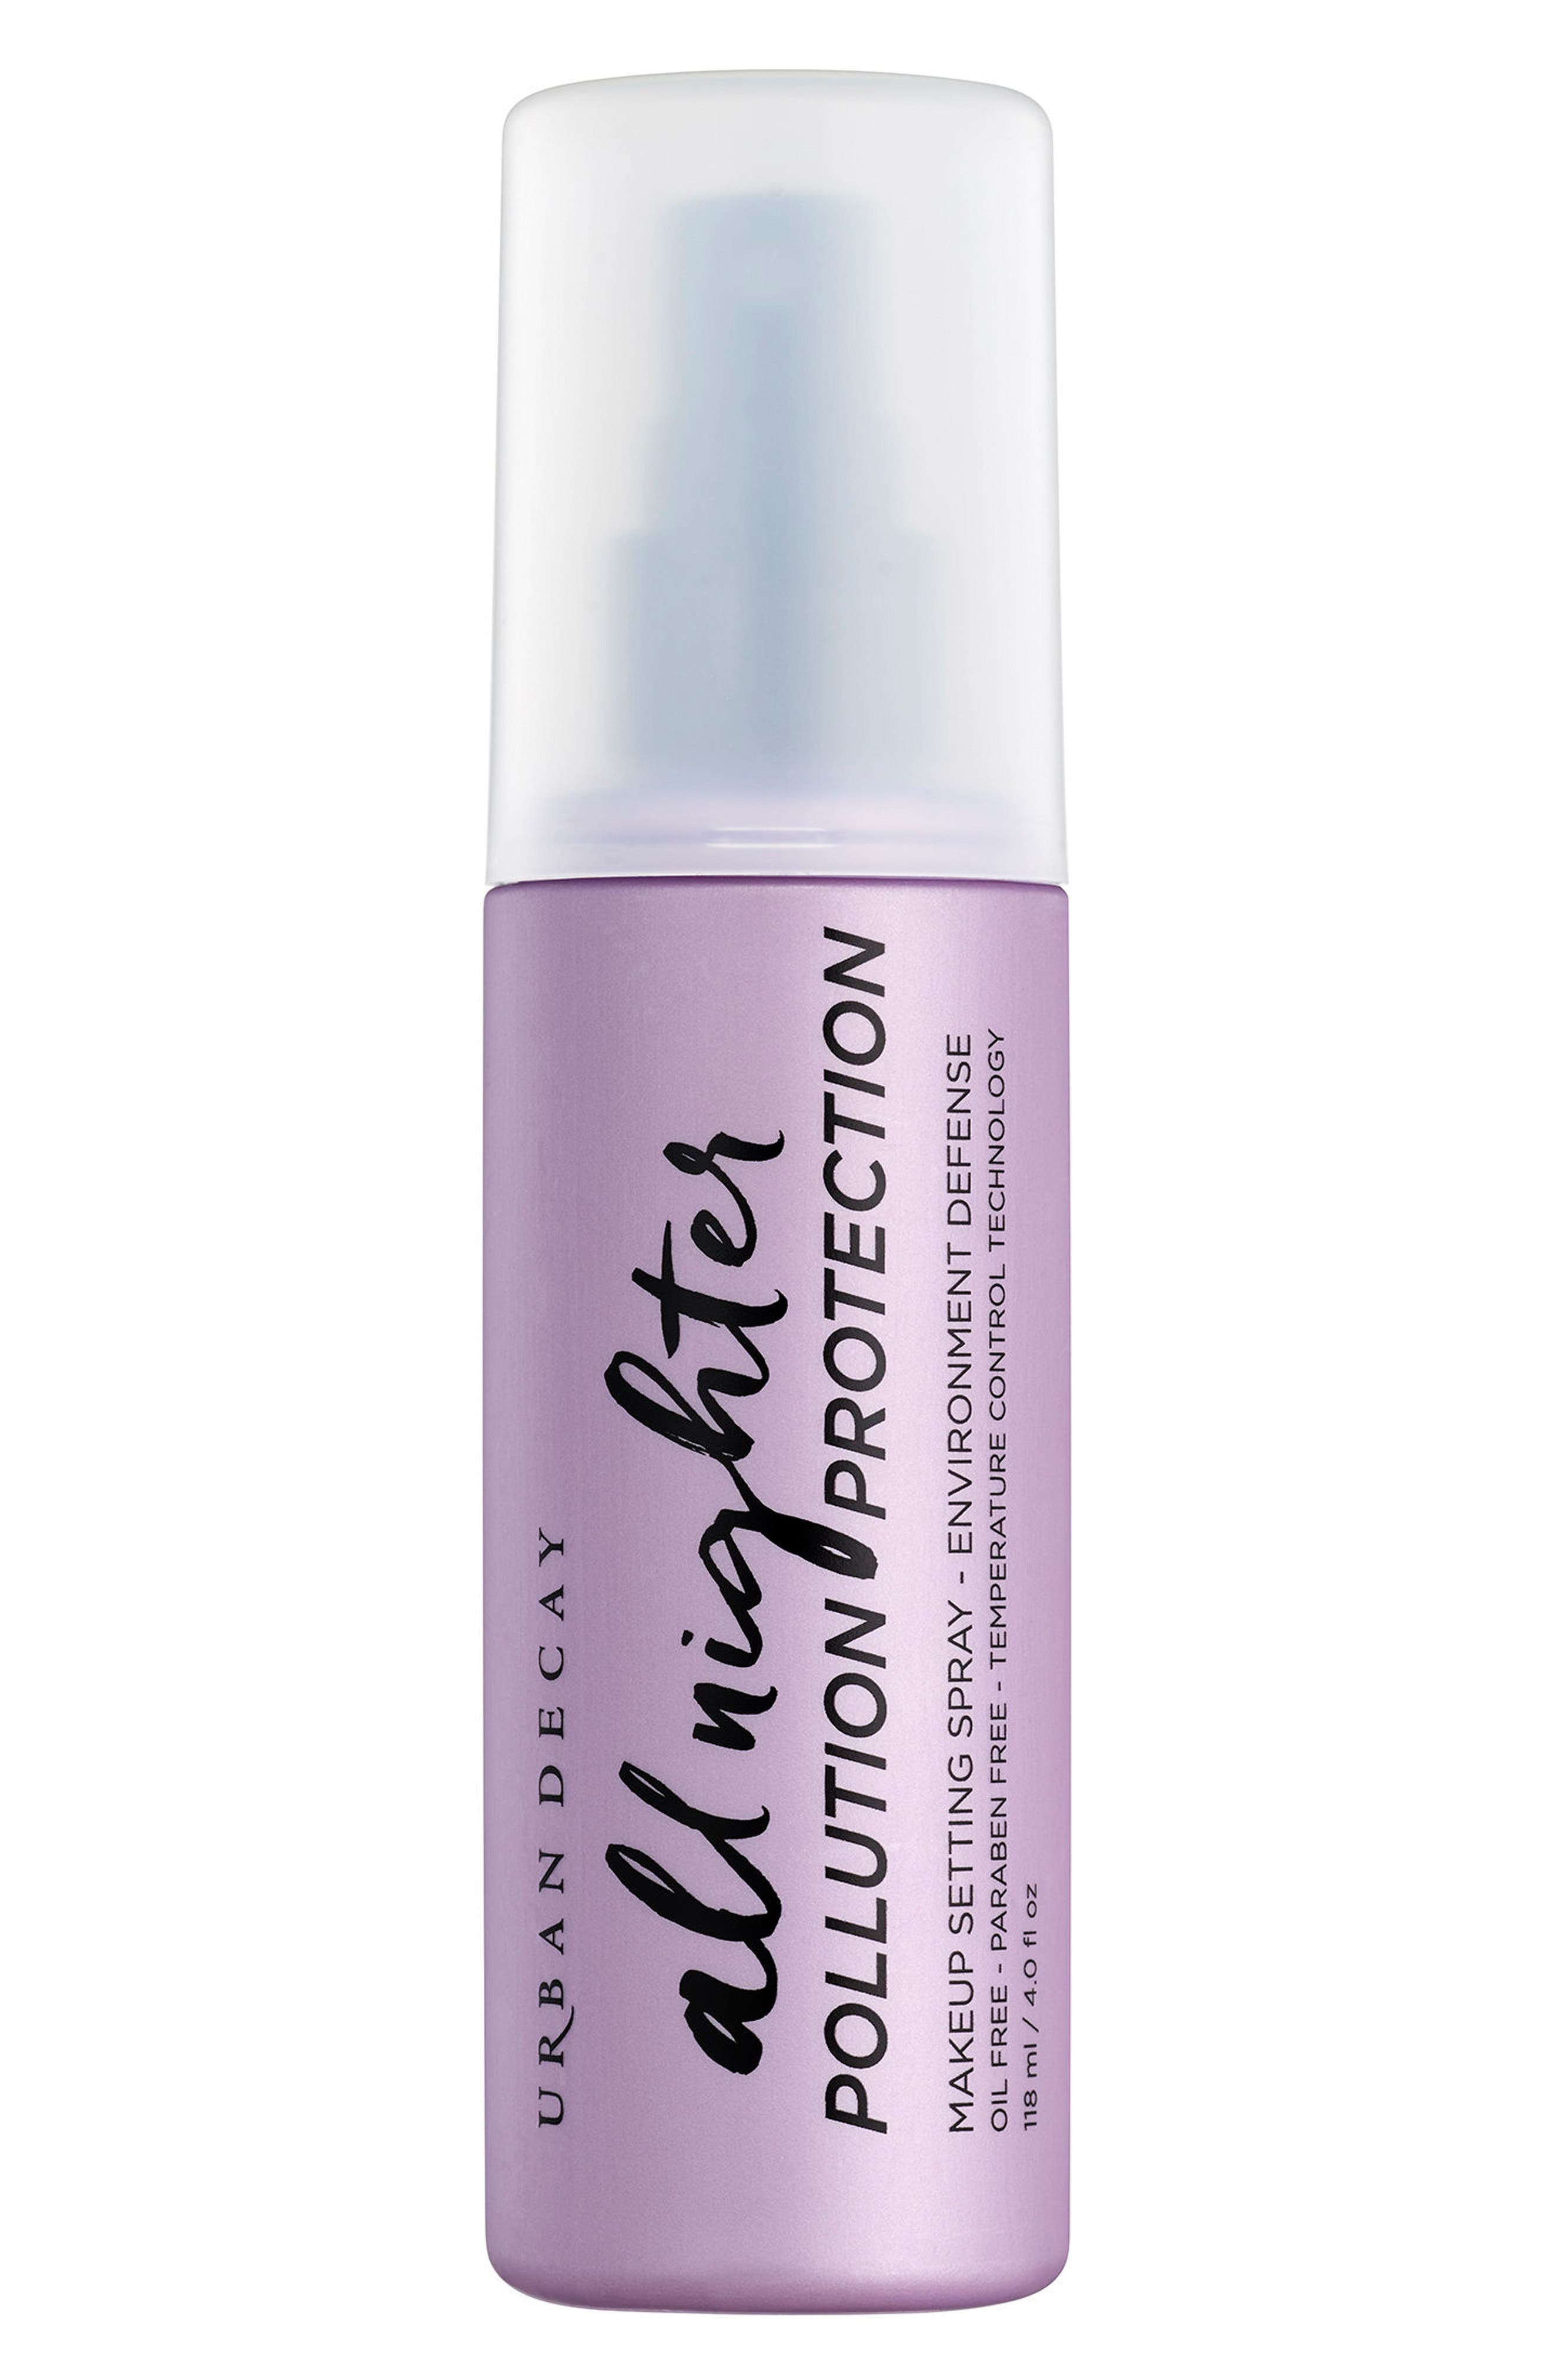 All Nighter Pollution Protection Environmental Defense Makeup Setting Spray,                         Main,                         color, No Color